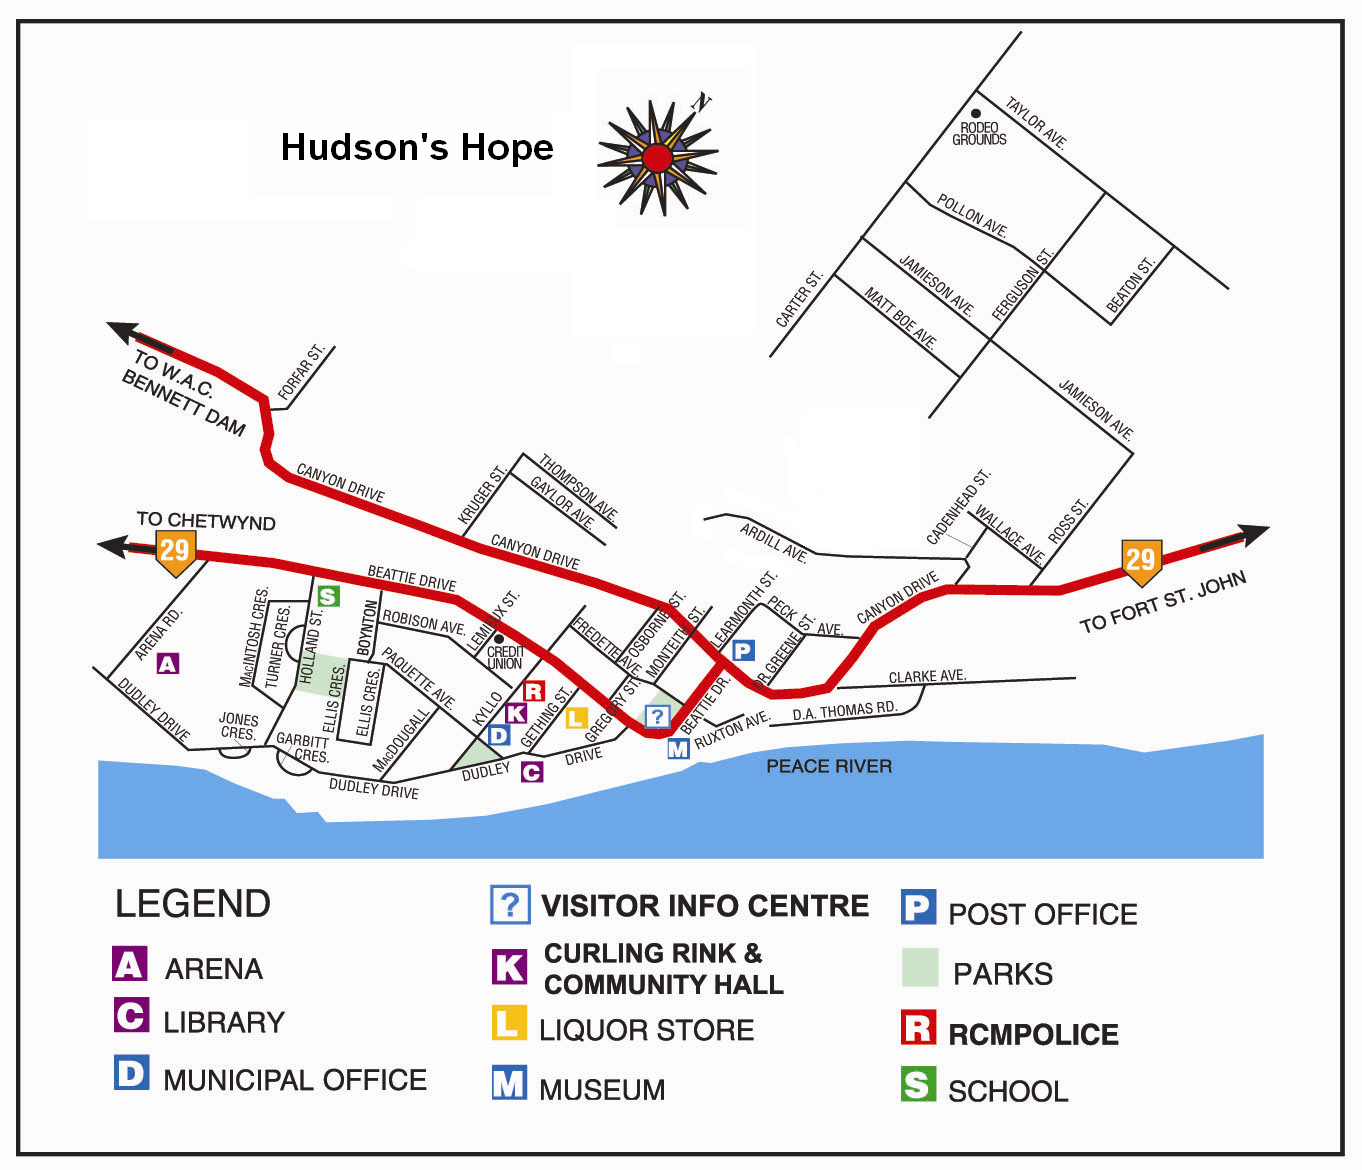 Map Of Hope Bc Canada File:Hudson's Hope BC map.PNG   Wikipedia